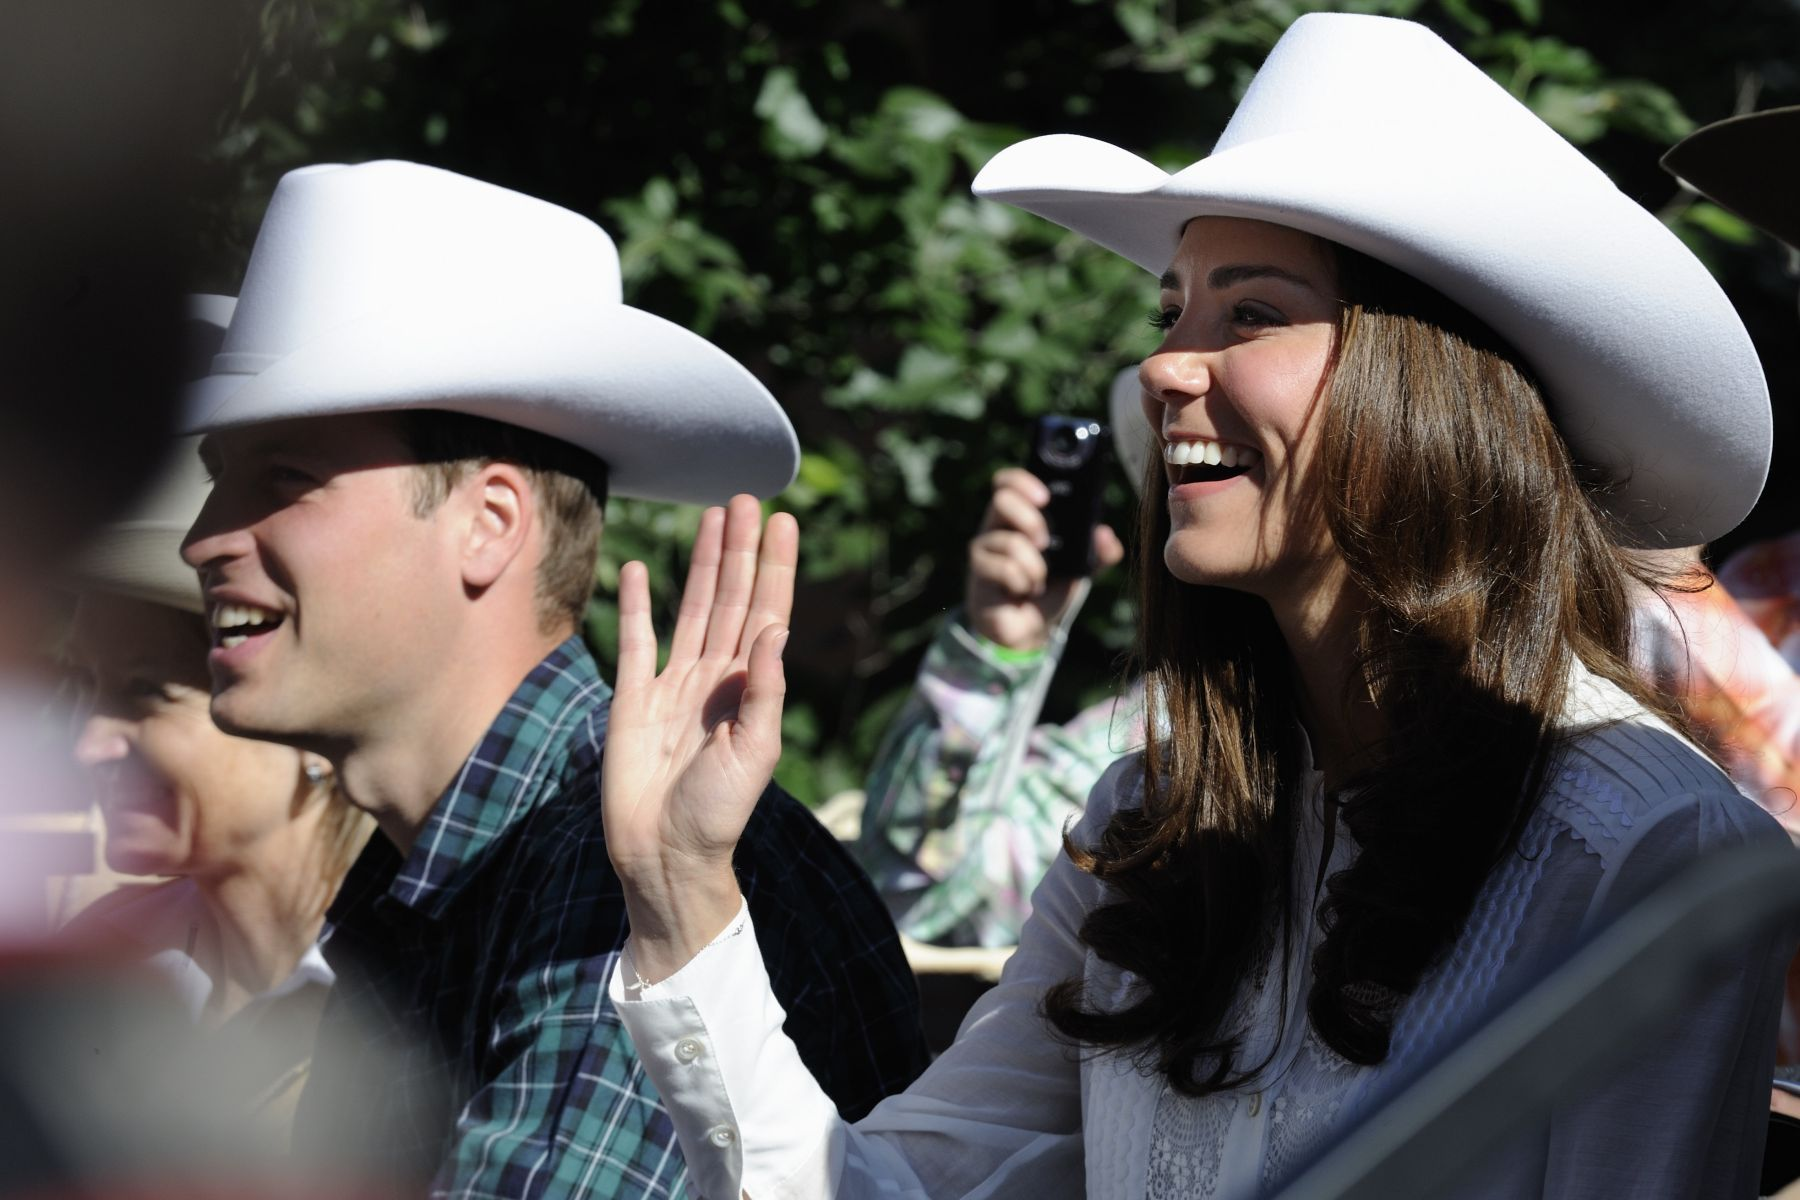 Their Royal Highnesses truly enjoyed the parade.